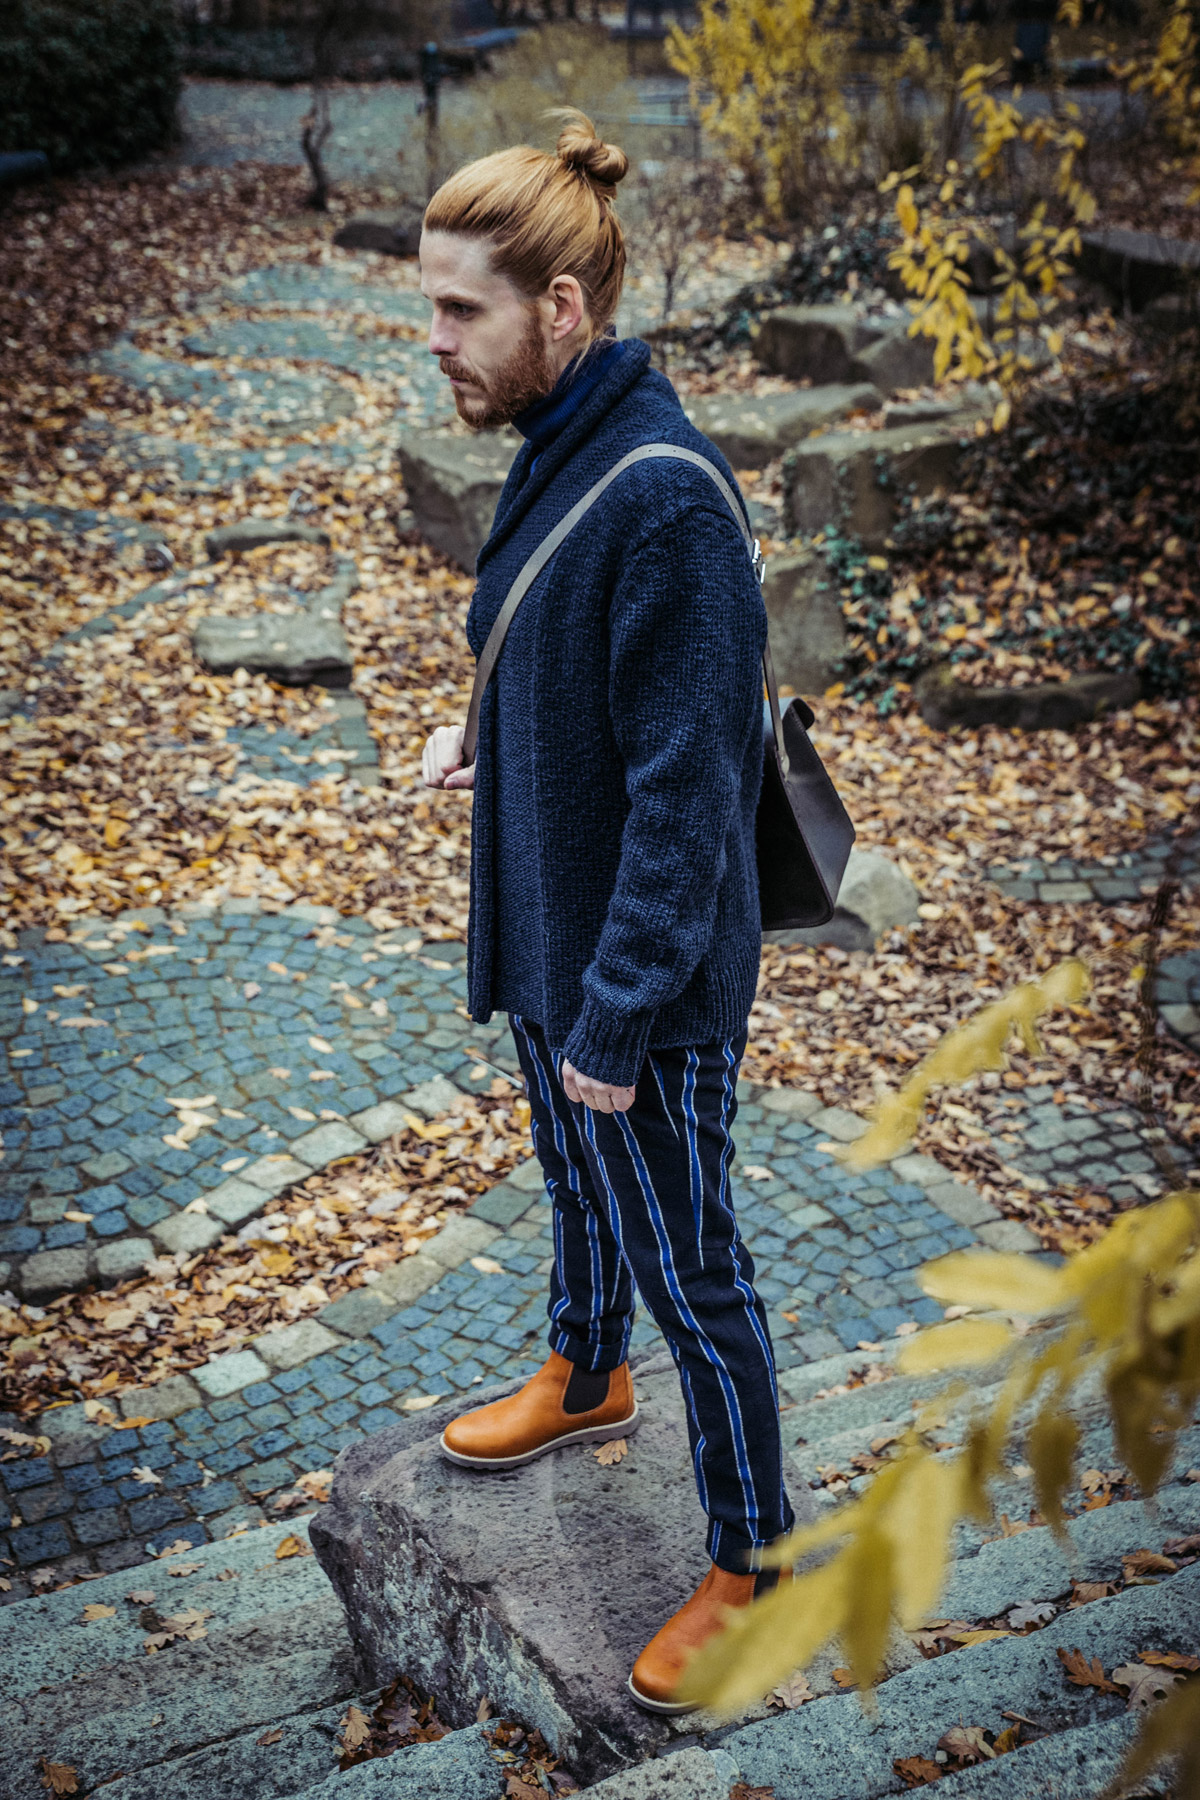 Maennermode-Influencer-Winterlook-Outfit-Strickjacek-Boots-Ledertasche